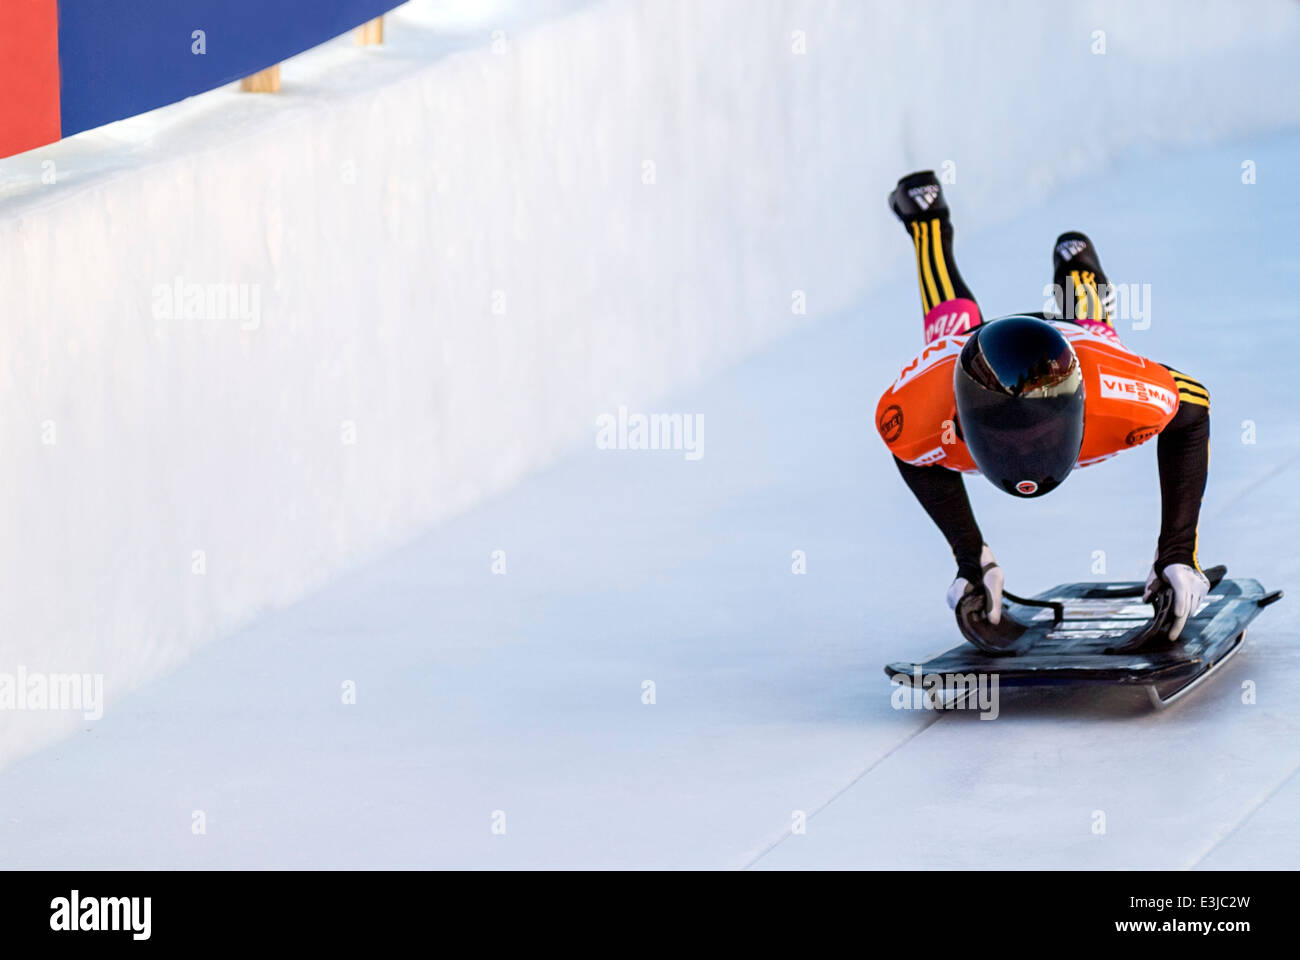 Skeleton rider during the World Cup Championships at the Olympia Bob Run, St Moritz, Switzerland. - Stock Image